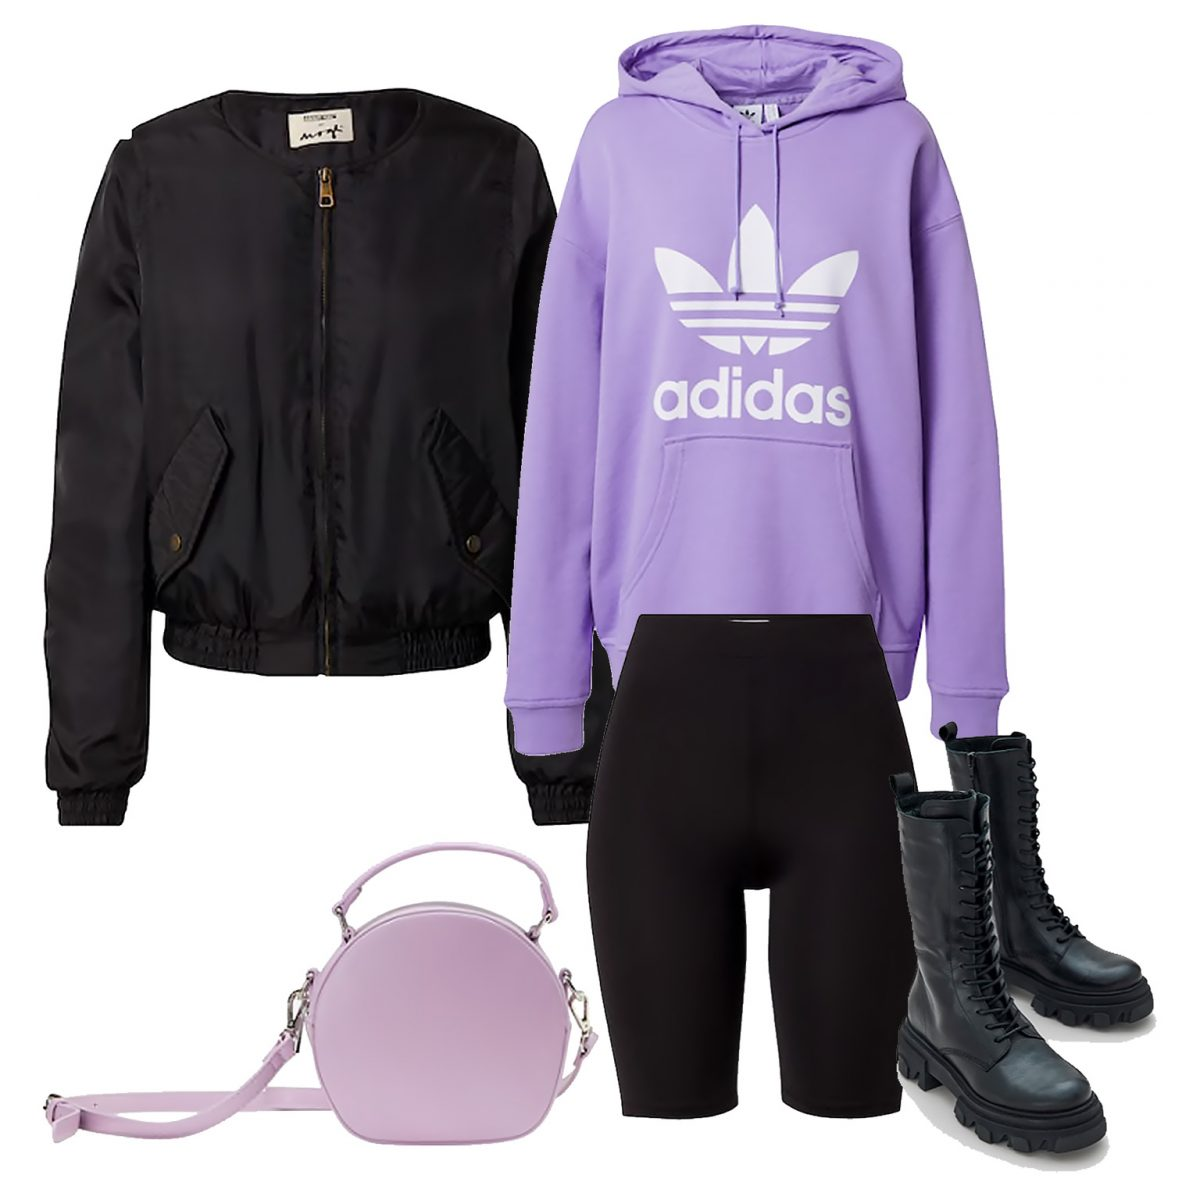 outfit-2